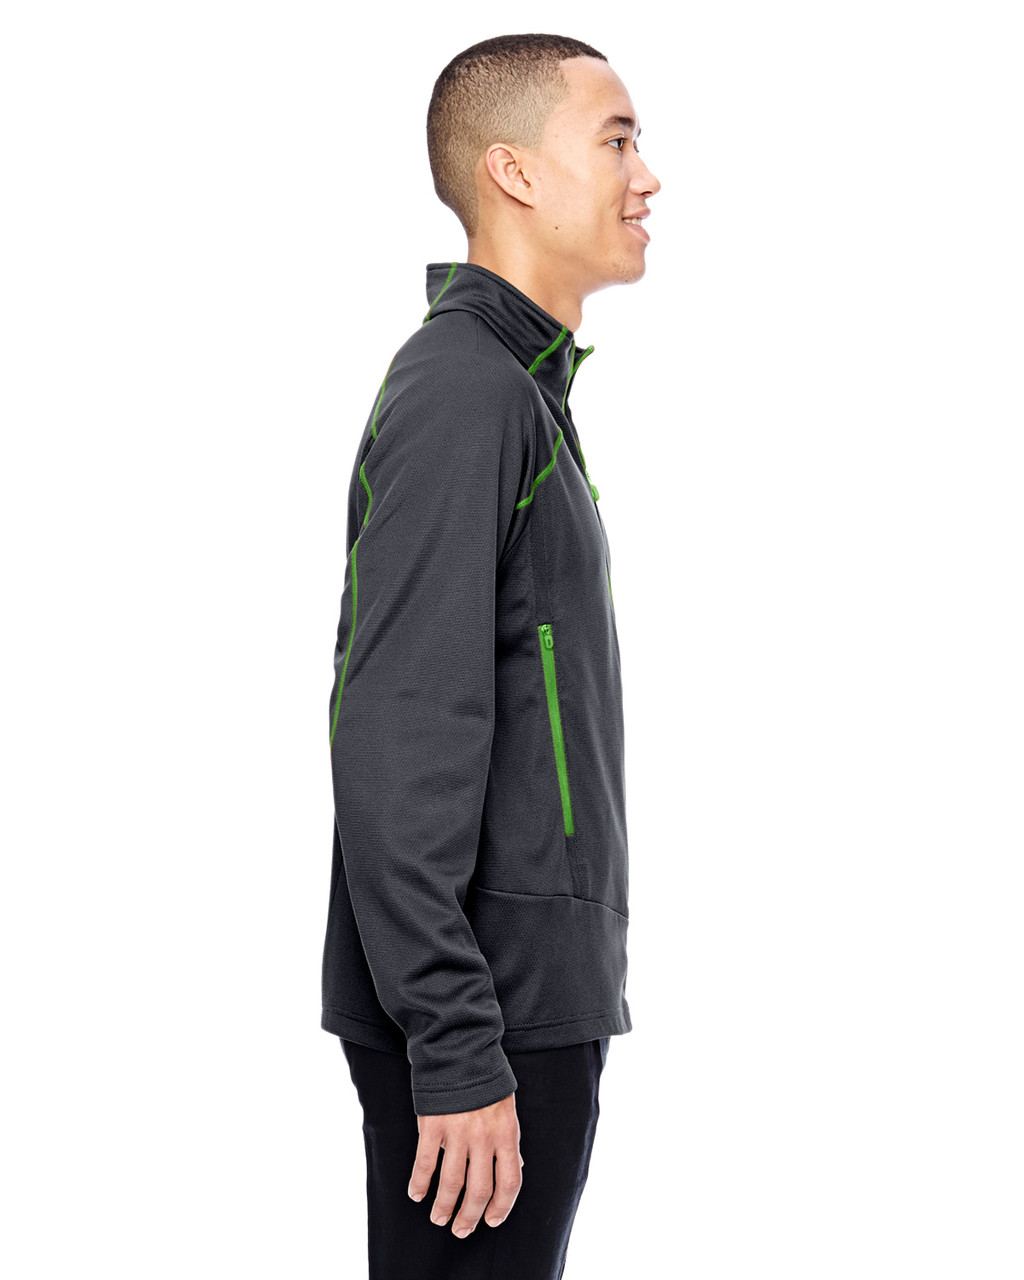 Carbon/Acid Green-side 88806 North End Sport Red Interactive Cadence Two-Tone Brush Back Jacket